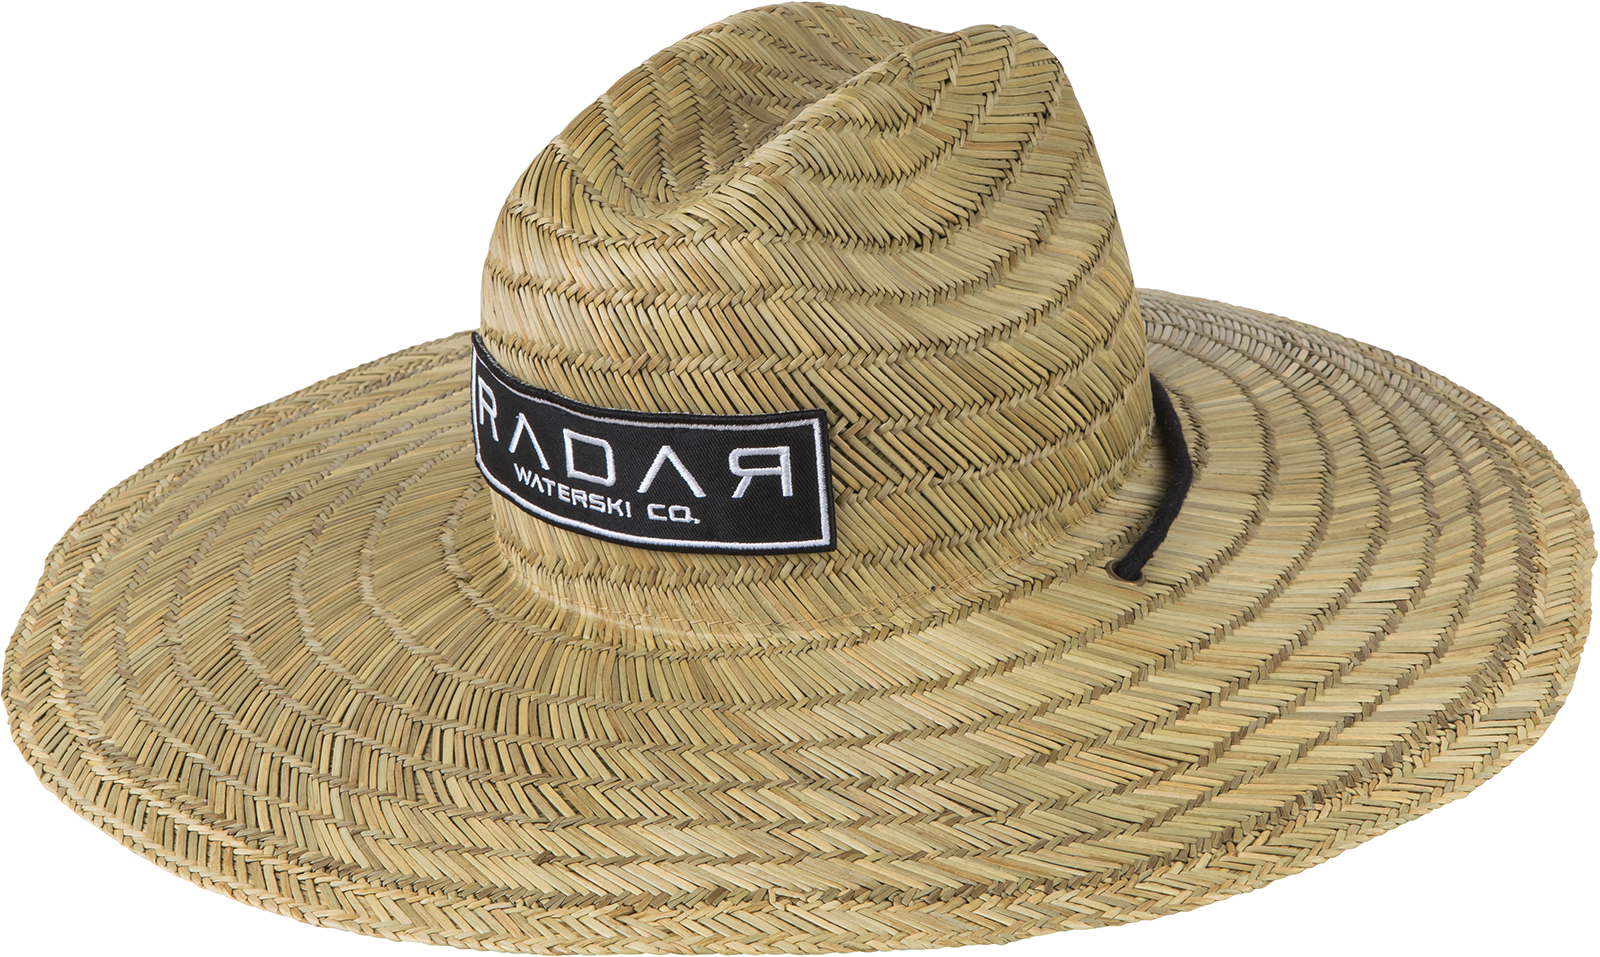 PADDLER'S SUN HAT OSFA RADAR 2018